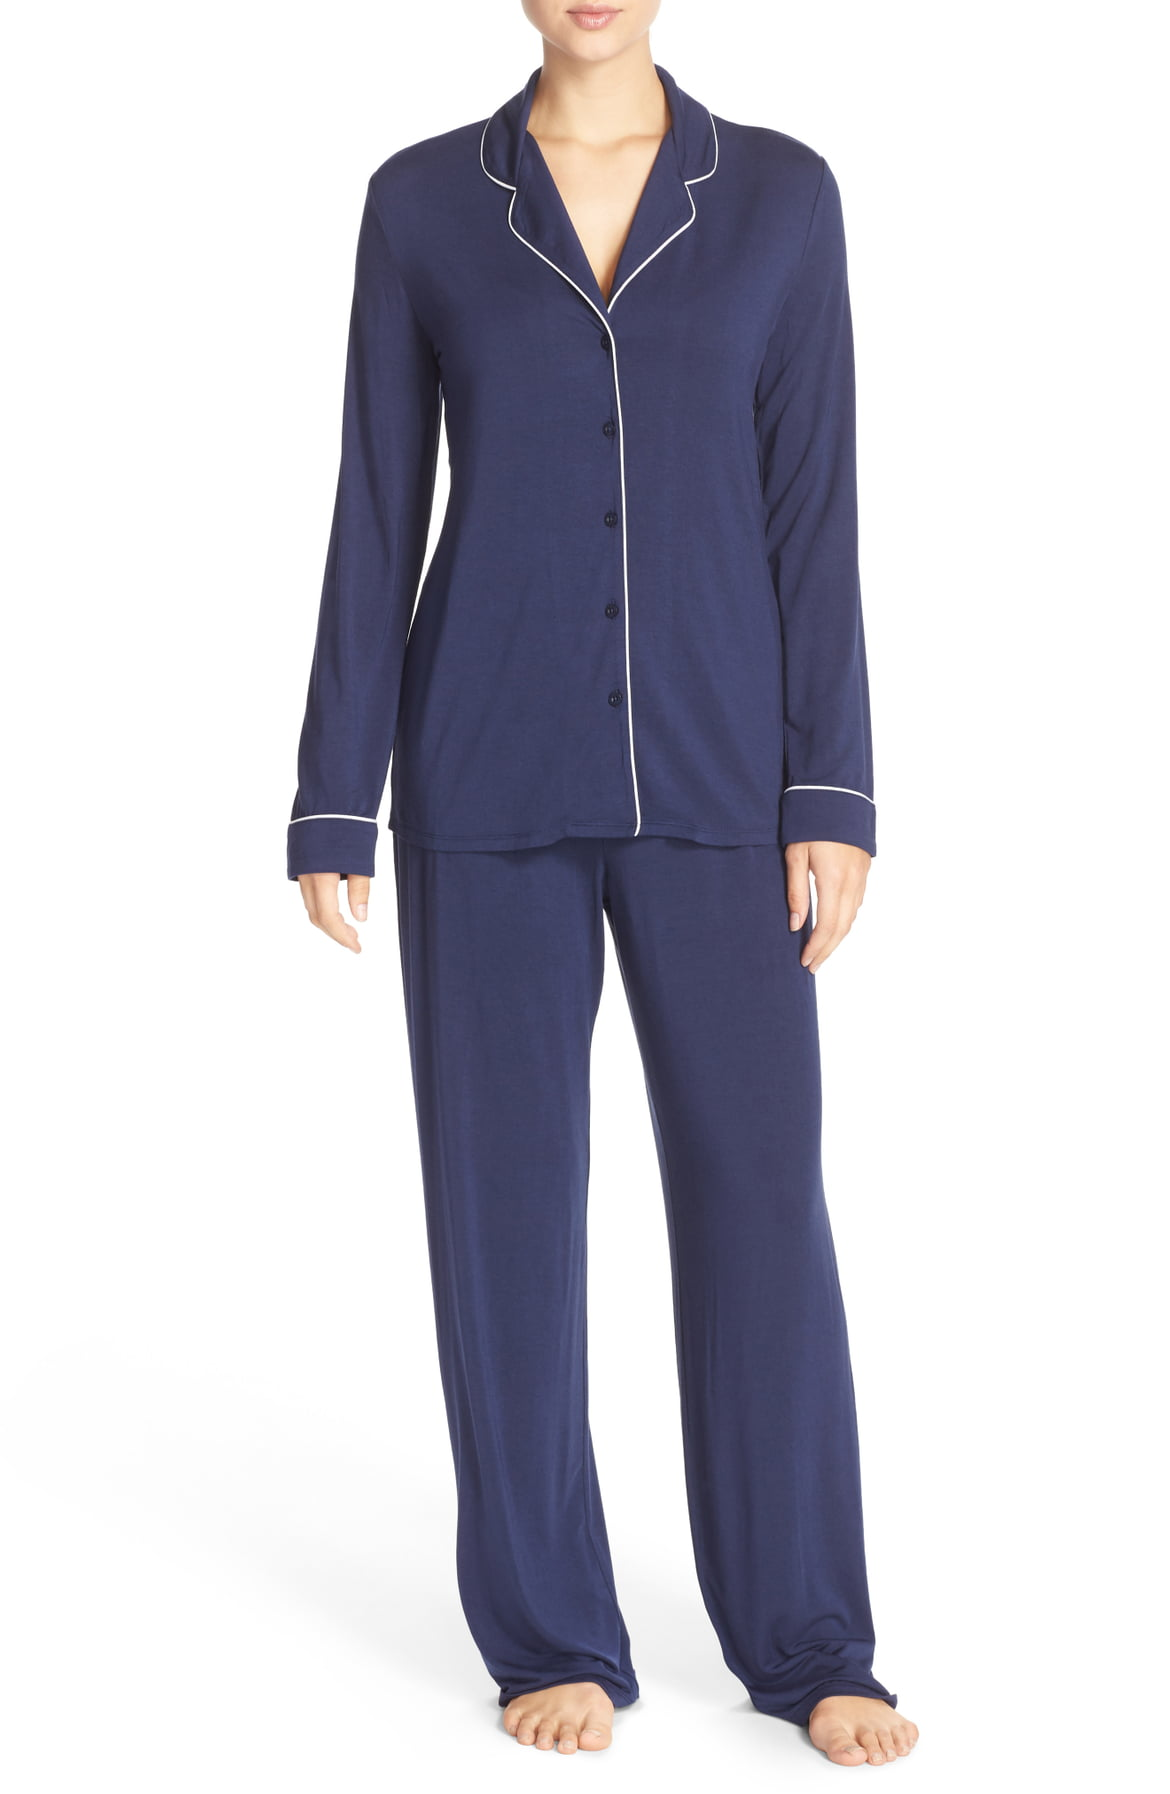 Let her sleep - and sleep in comfort. Contrast piping outlines classic menswear-inspired PJs that pair a feminine swing top with soft, fluid pants to complete the set.{ } Every mom loves comfy jams. Price $65 @ Nordstrom.{ }(Image: Nordstrom)